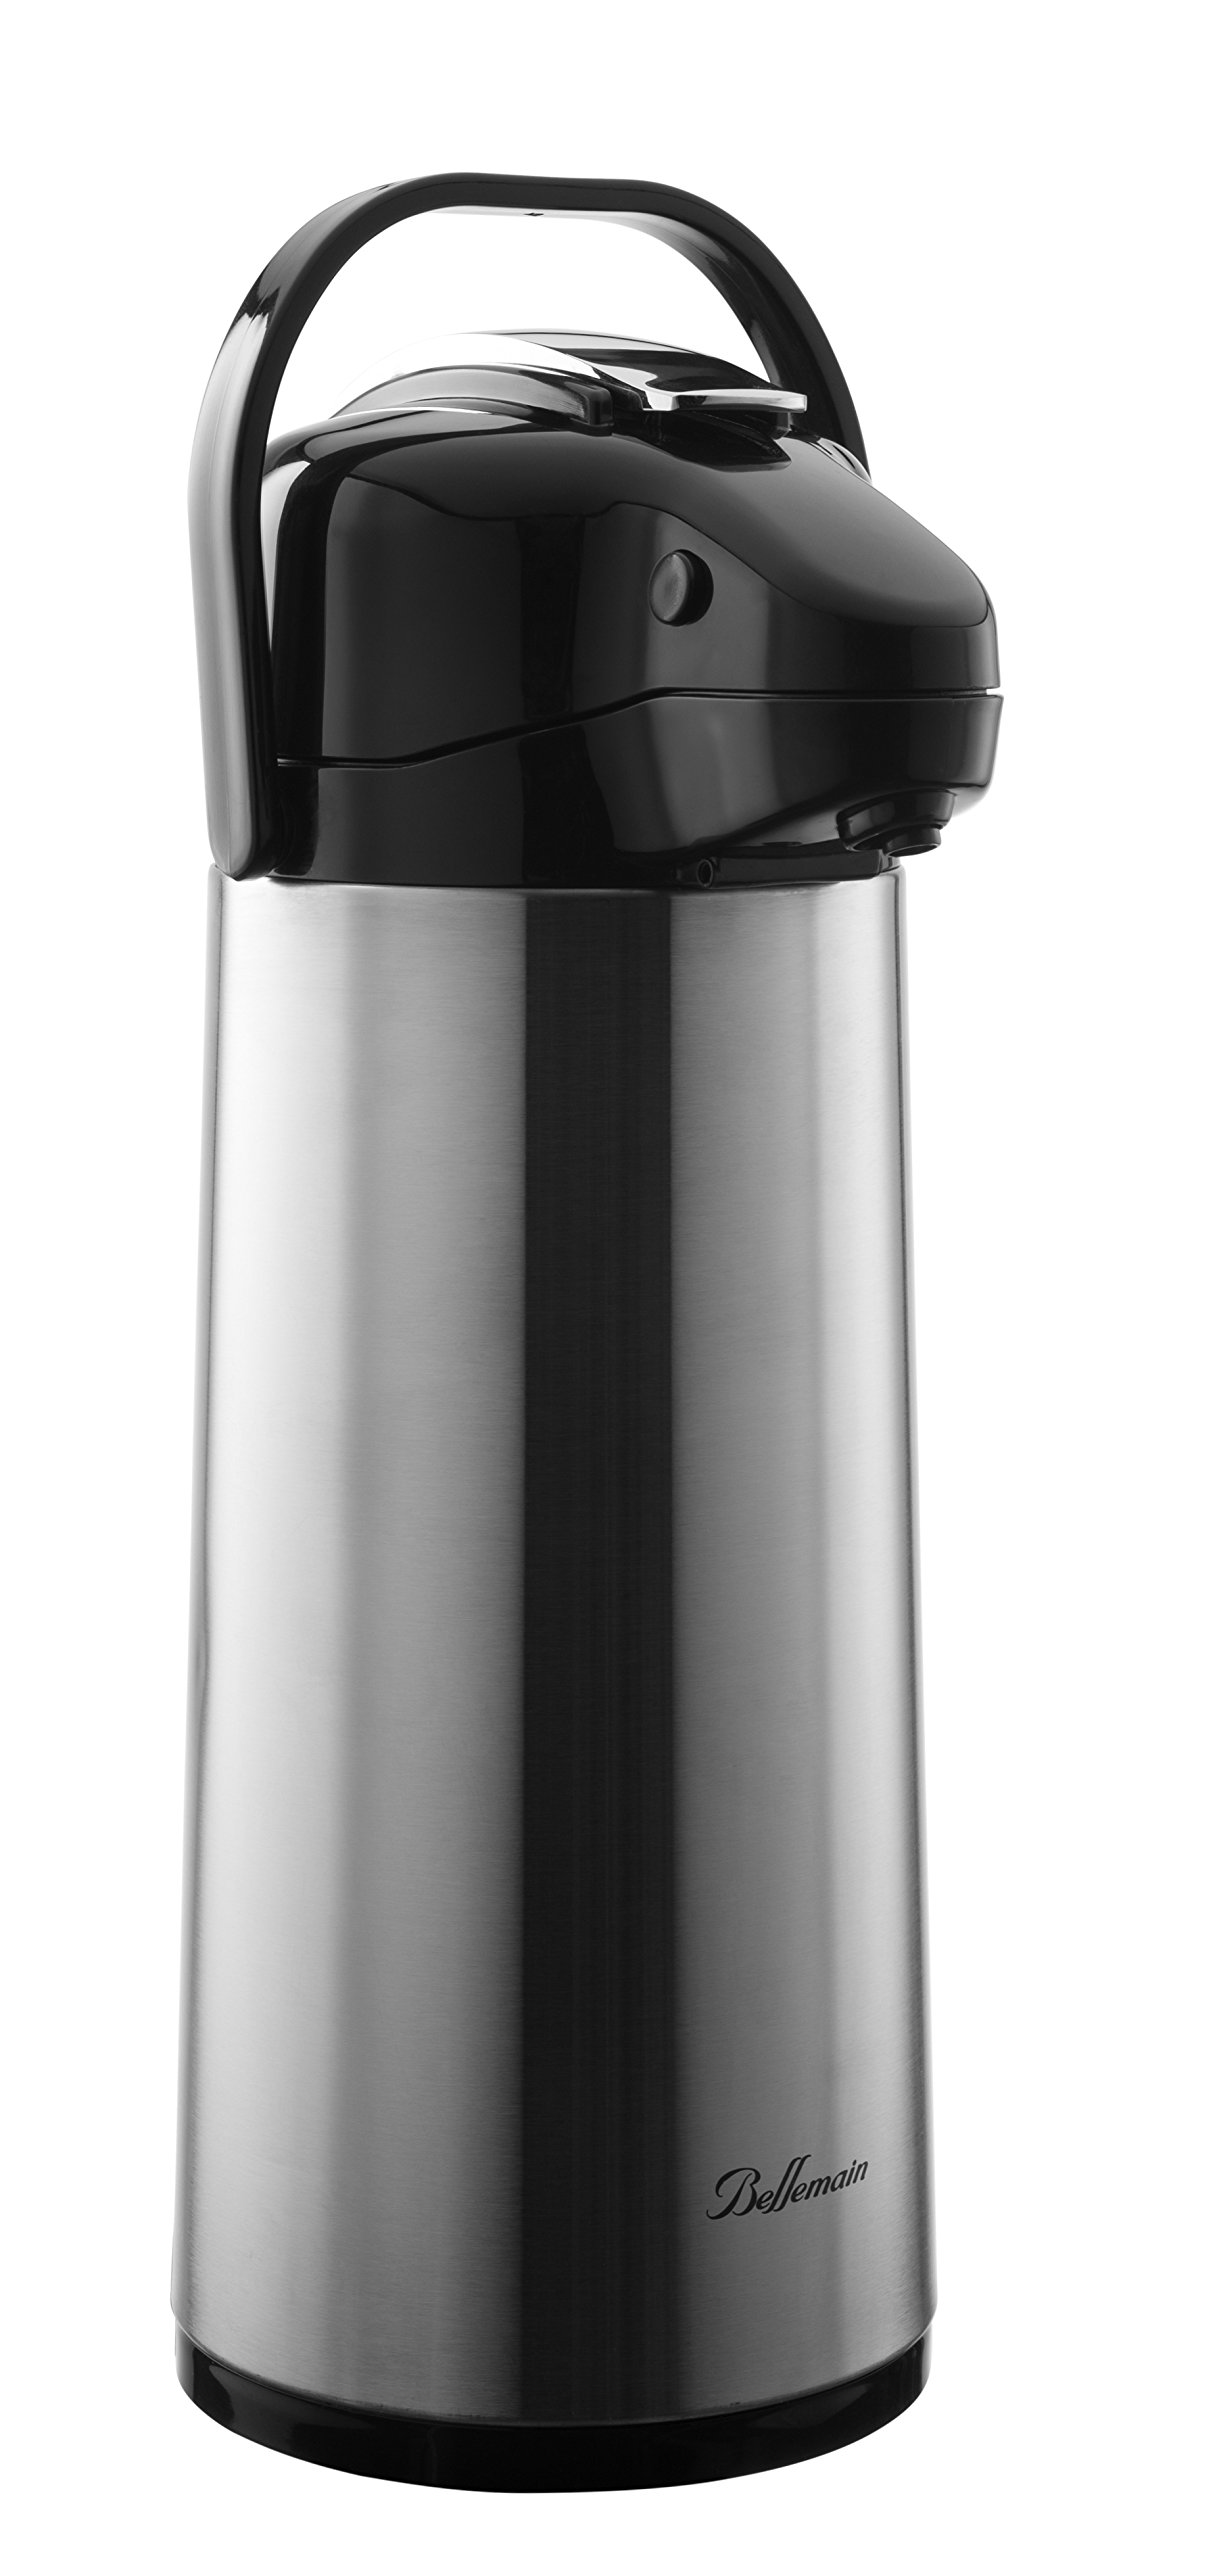 Bellemain 2.2 Liter Airpot Coffee Dispenser with Pump, Stainless Steel Vacuum Insulated by Bellemain